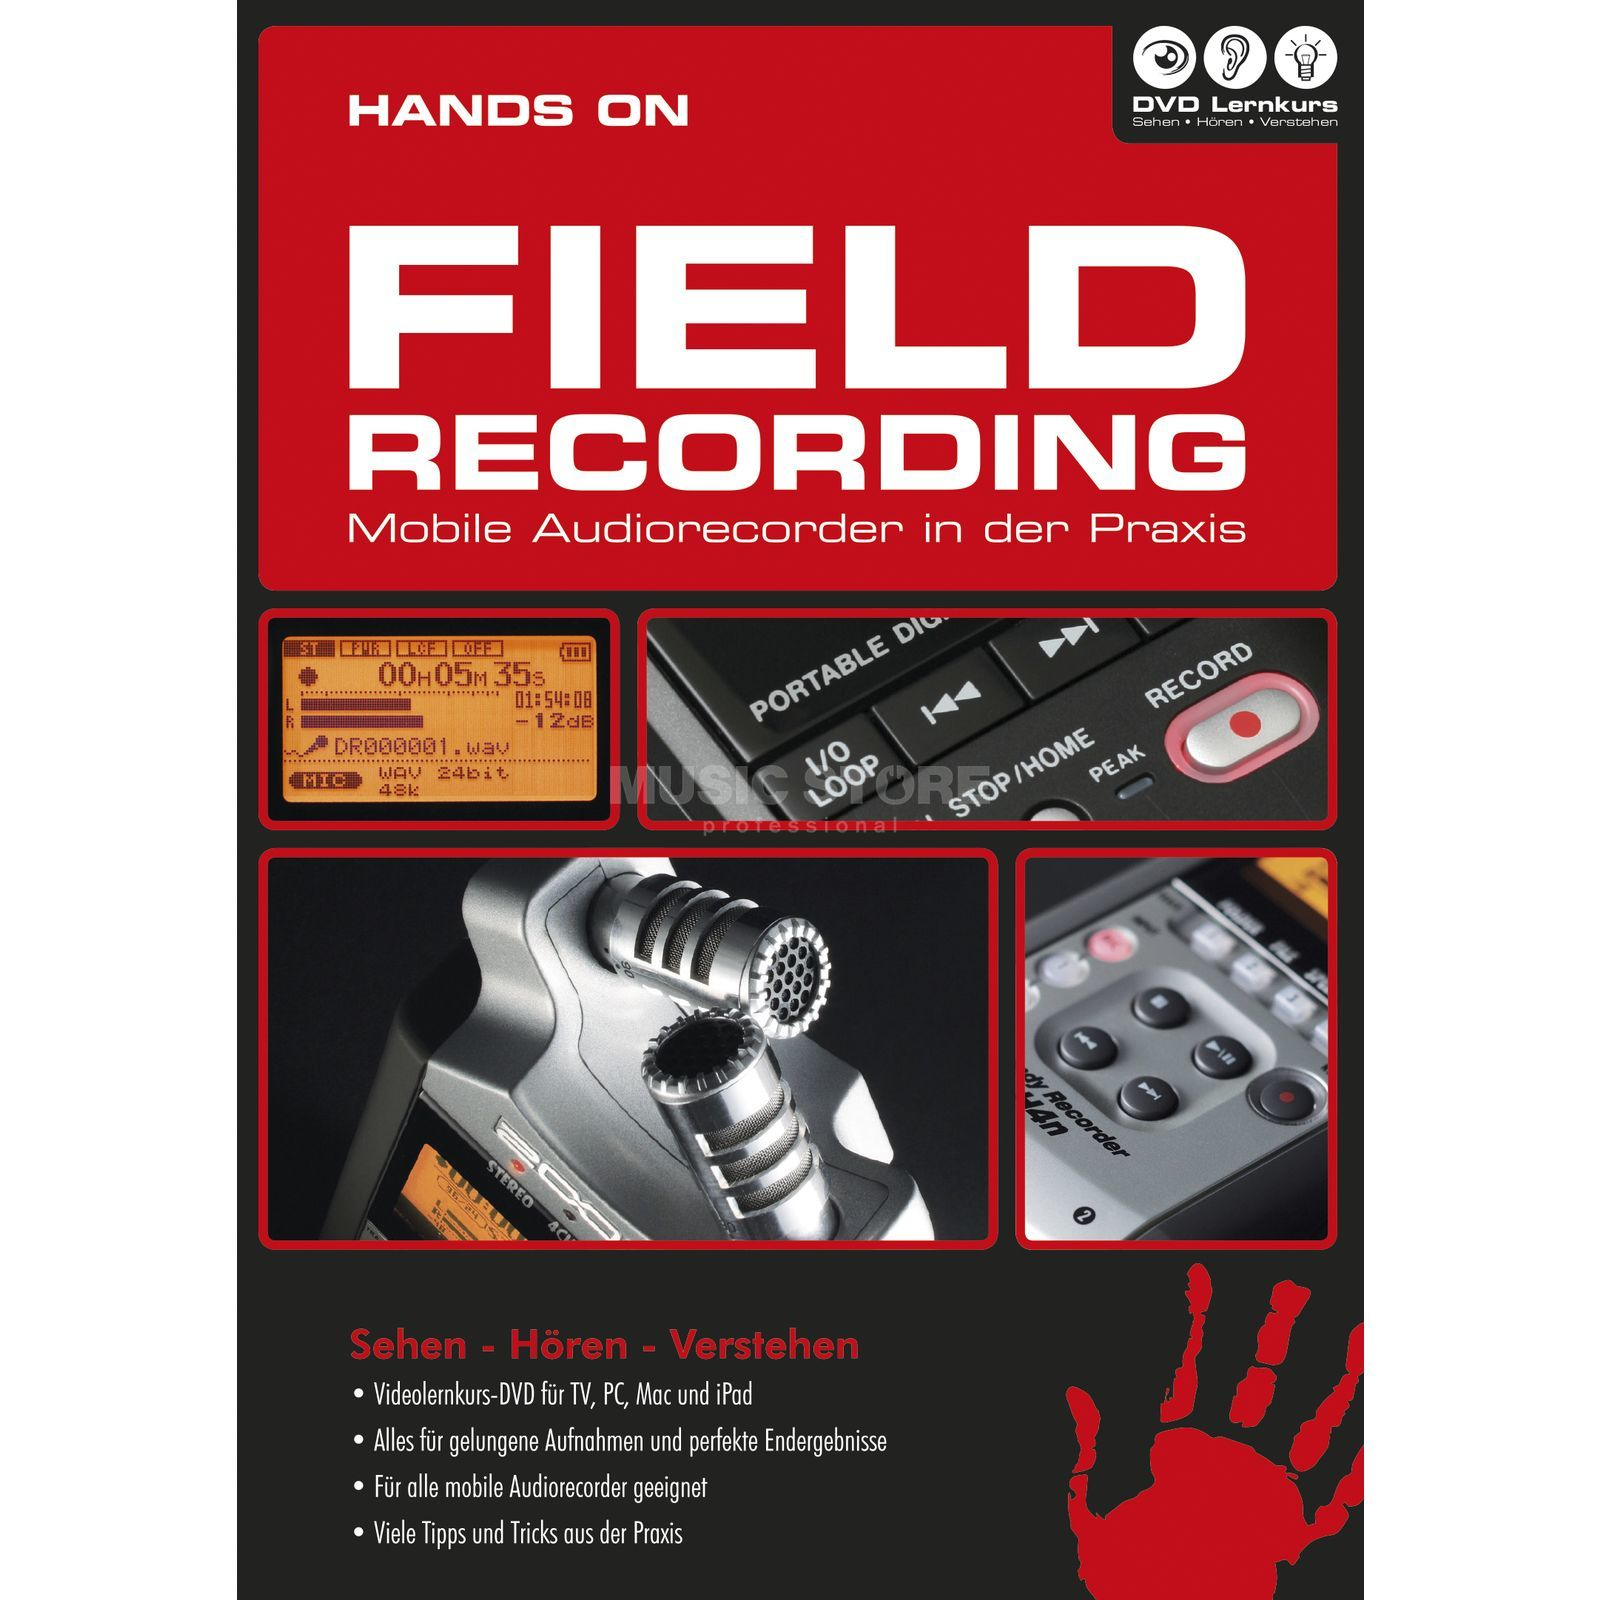 DVD Lernkurs Hands on Field Recording Product Image